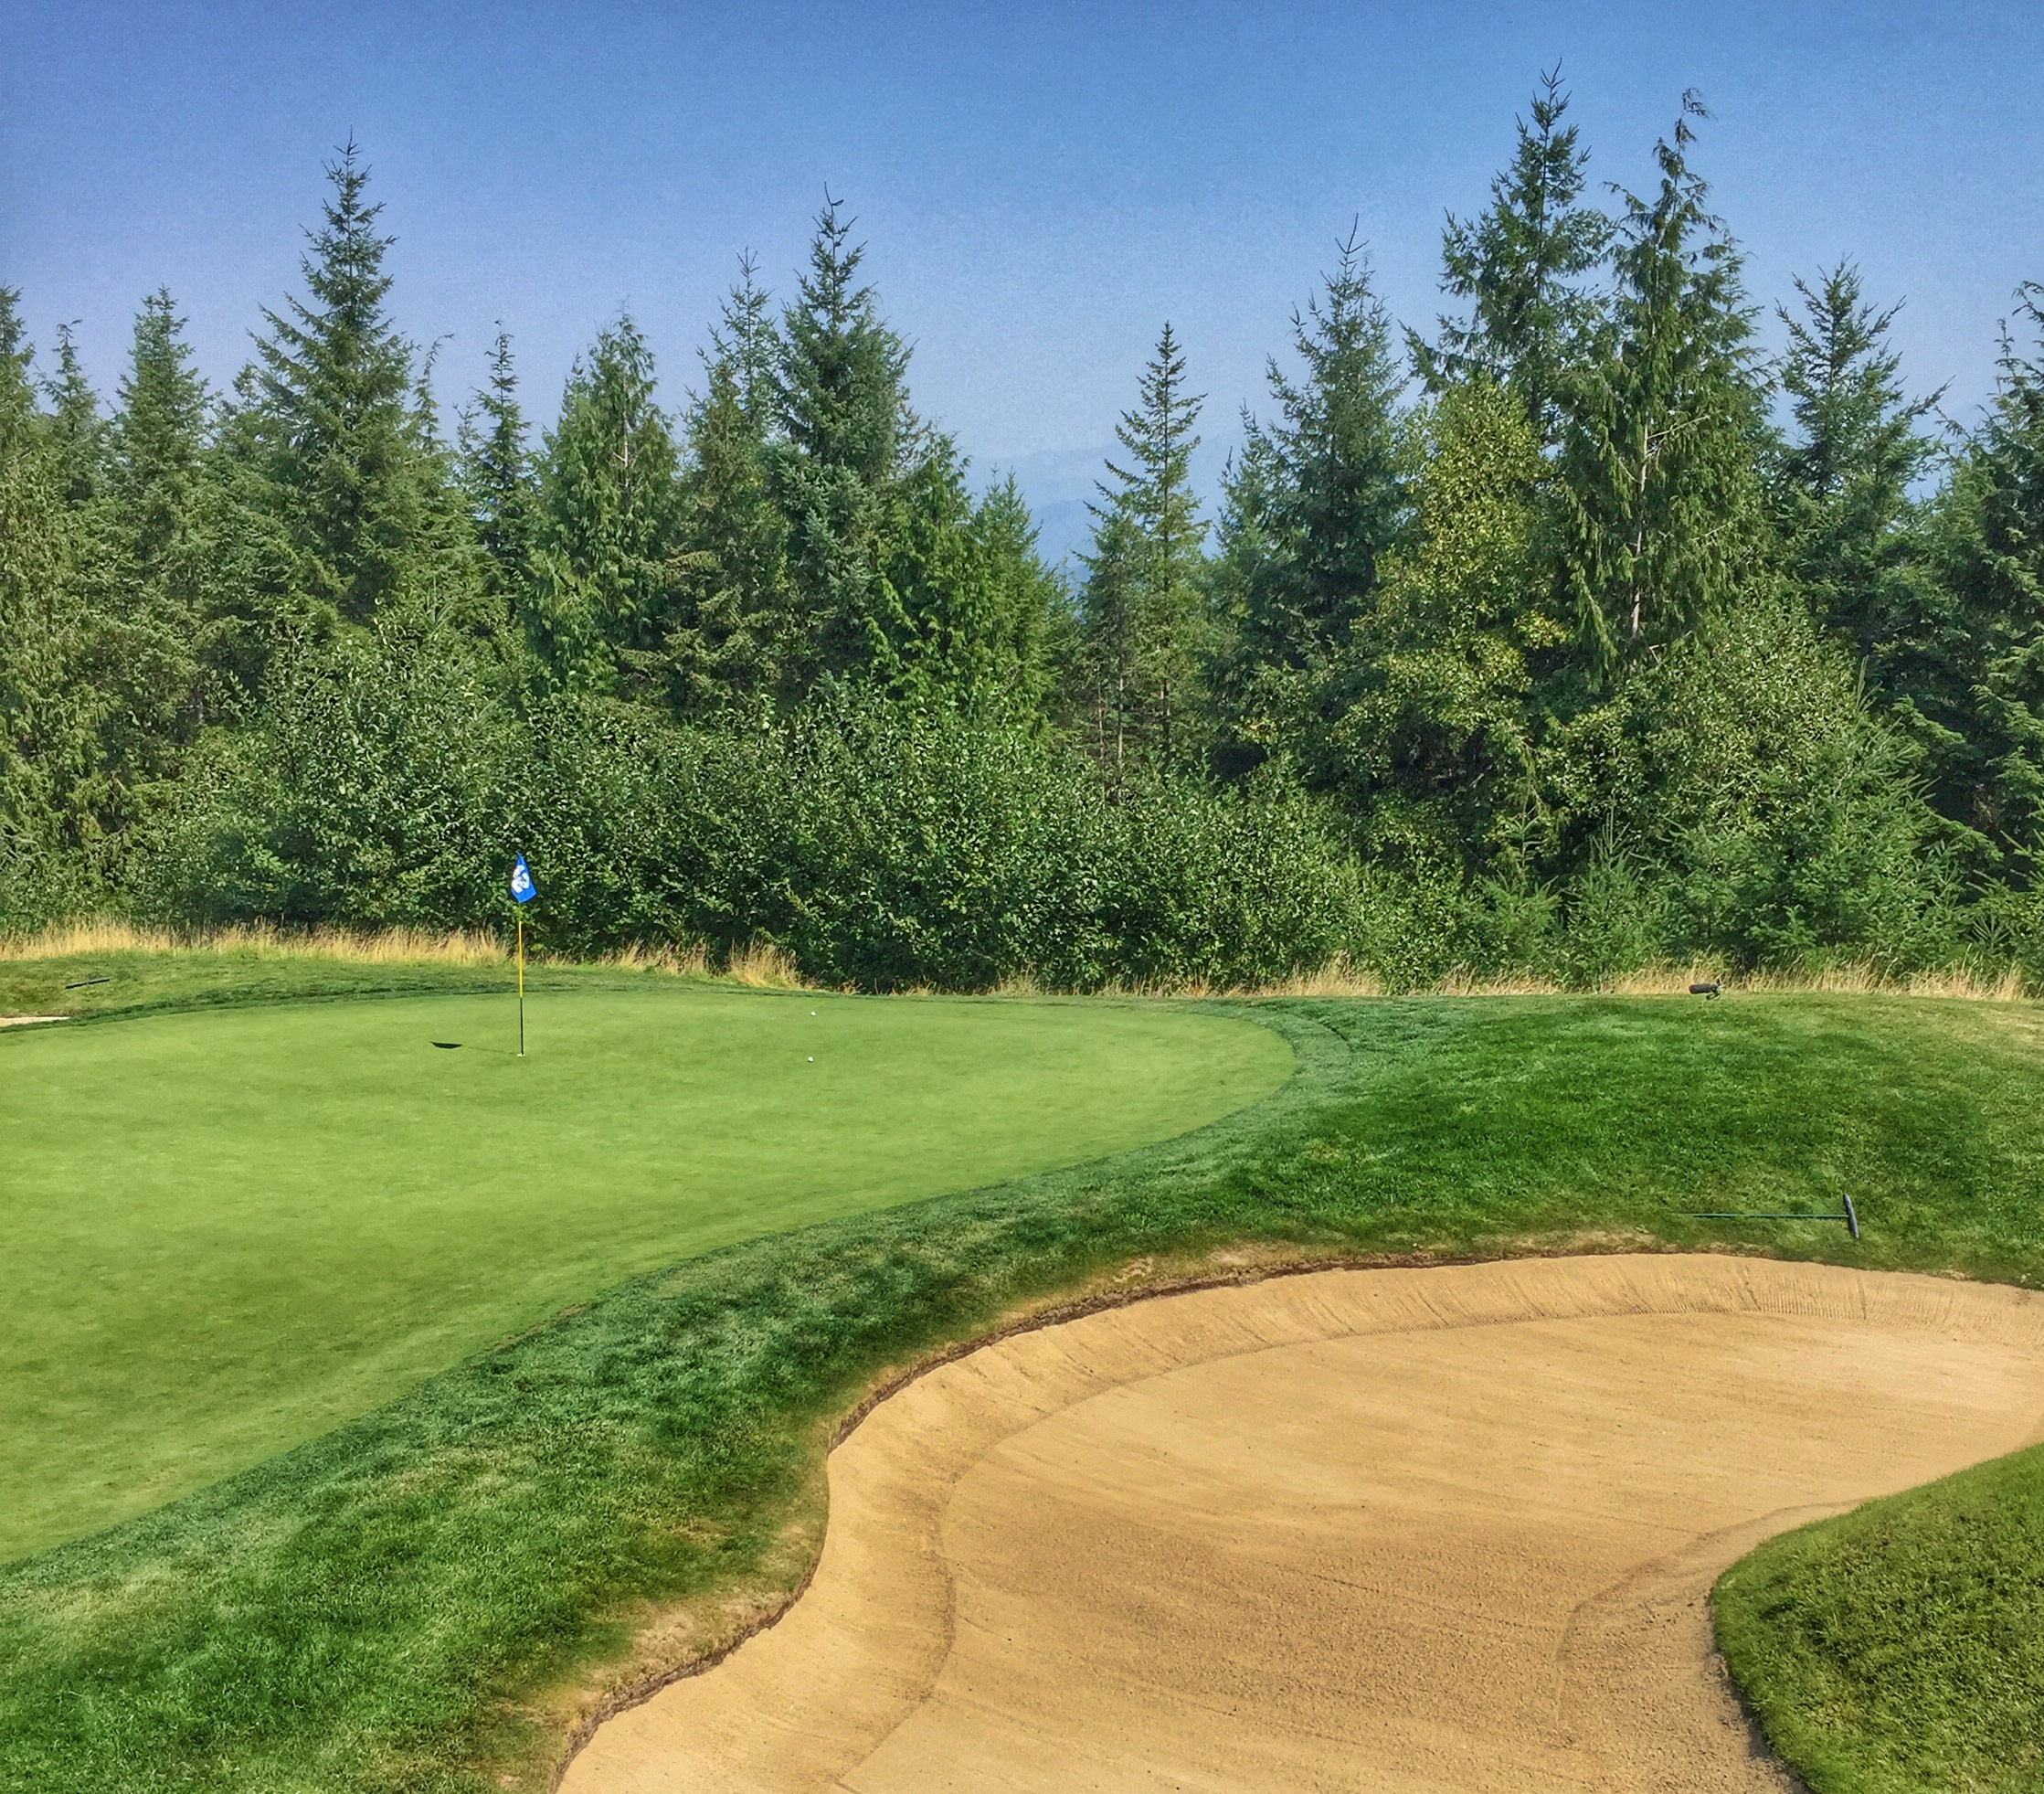 The flag on the 12th hole is in Seahawks fashion as an ode to the 12th man! Cool.